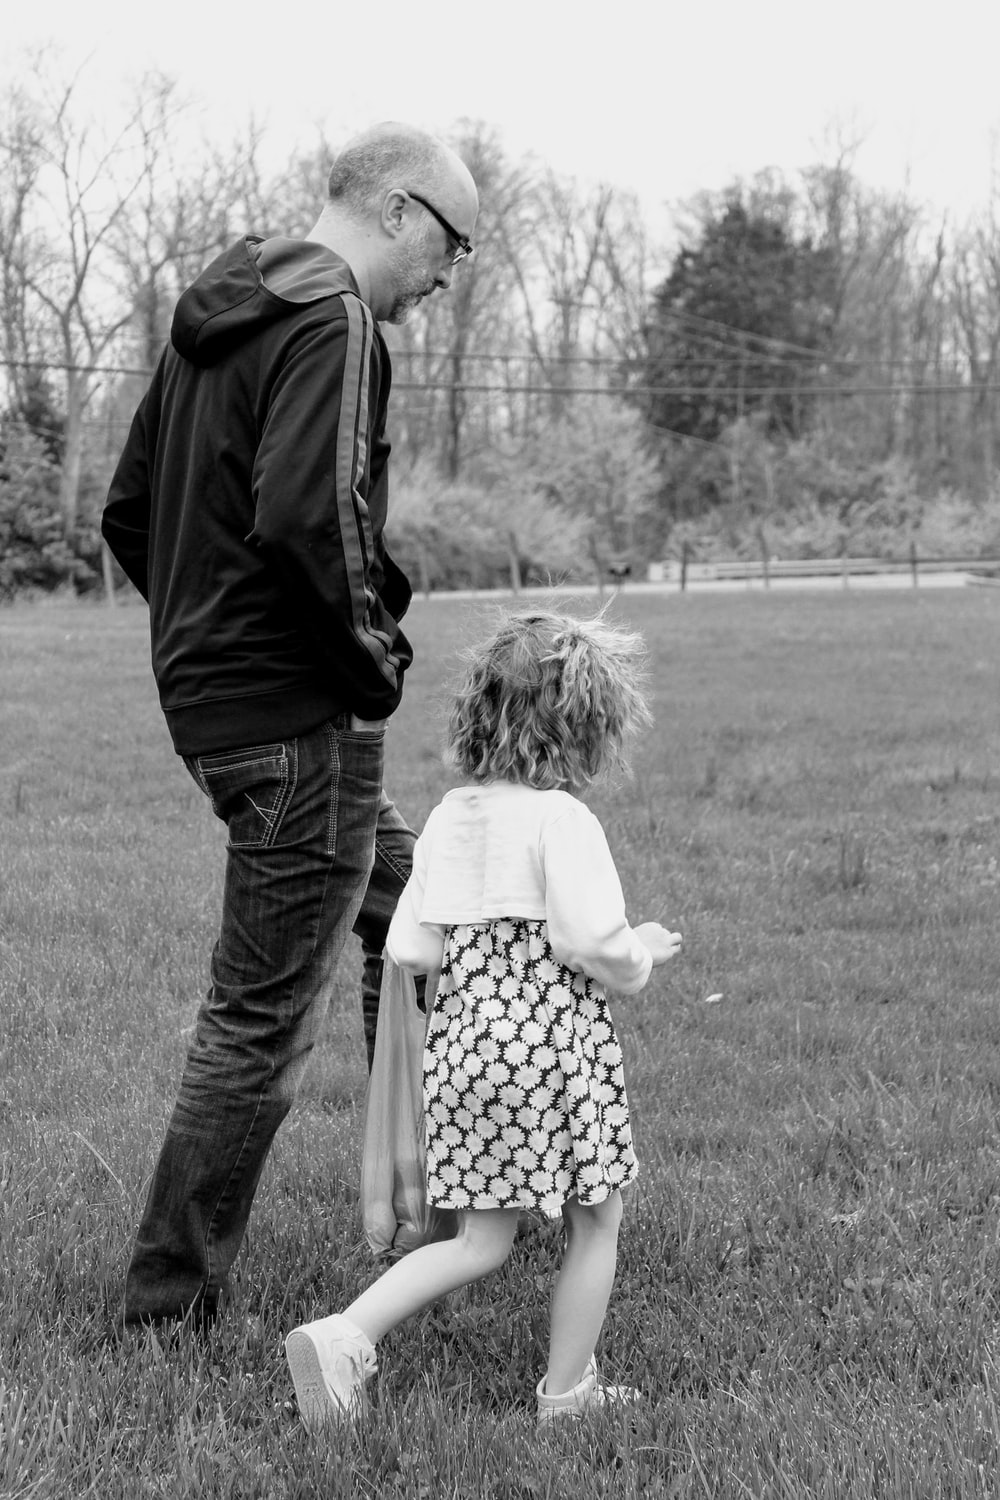 grayscale photo of man and woman walking on grass field